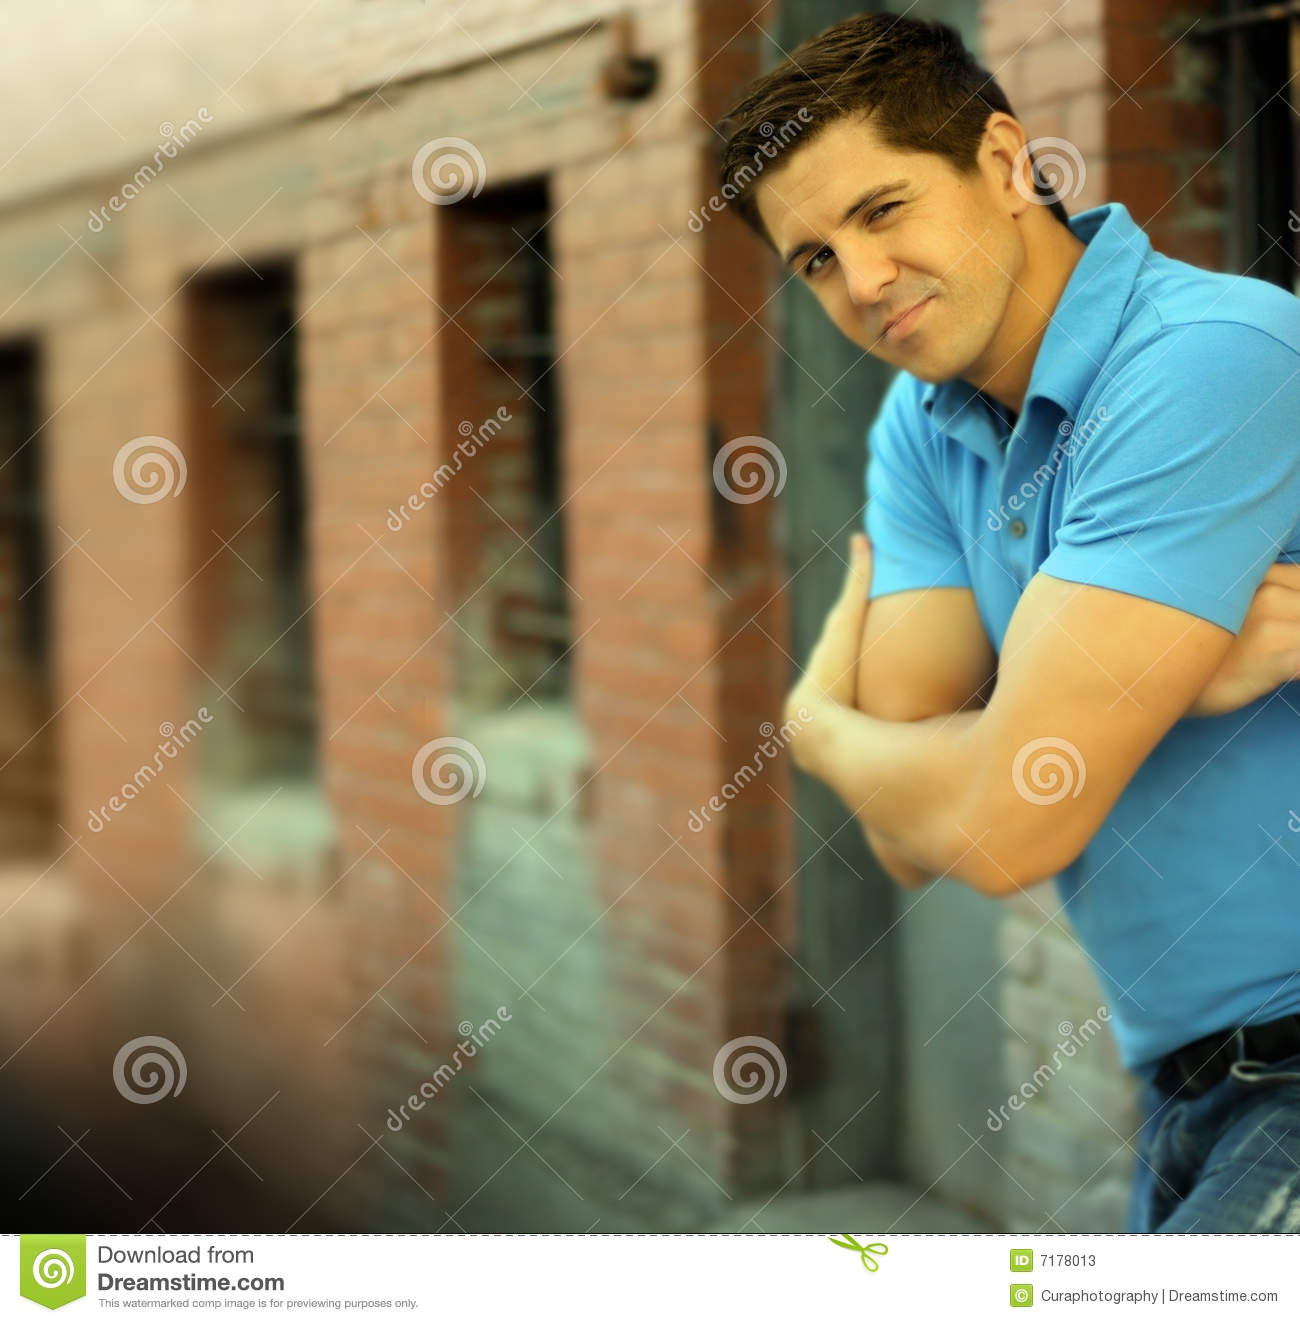 Of Young Good Looking Male Model With Folded Arms While Winking